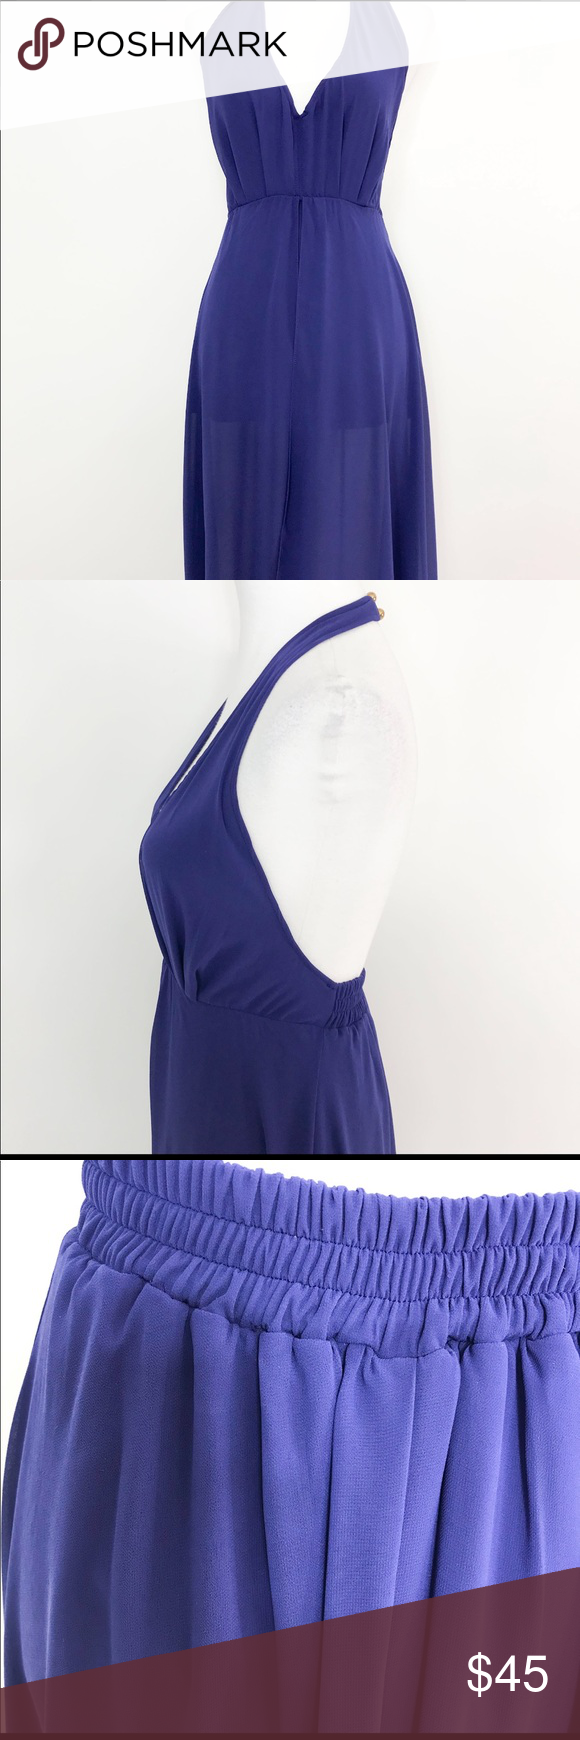 "Fashion nova Mullet Backless dress Fashion nova mullet backless dress New without tags, never worn. 100% polyester fabric and Lining. Measurements: Waist to hem 40"", Back Seam to hem 42"" Elastic on waist, Color Blue, Size Small, Beautiful for Summer, Spring, Vacation, speciall ocassion Fashionnova Dresses Maxi #shortbacklessdress"